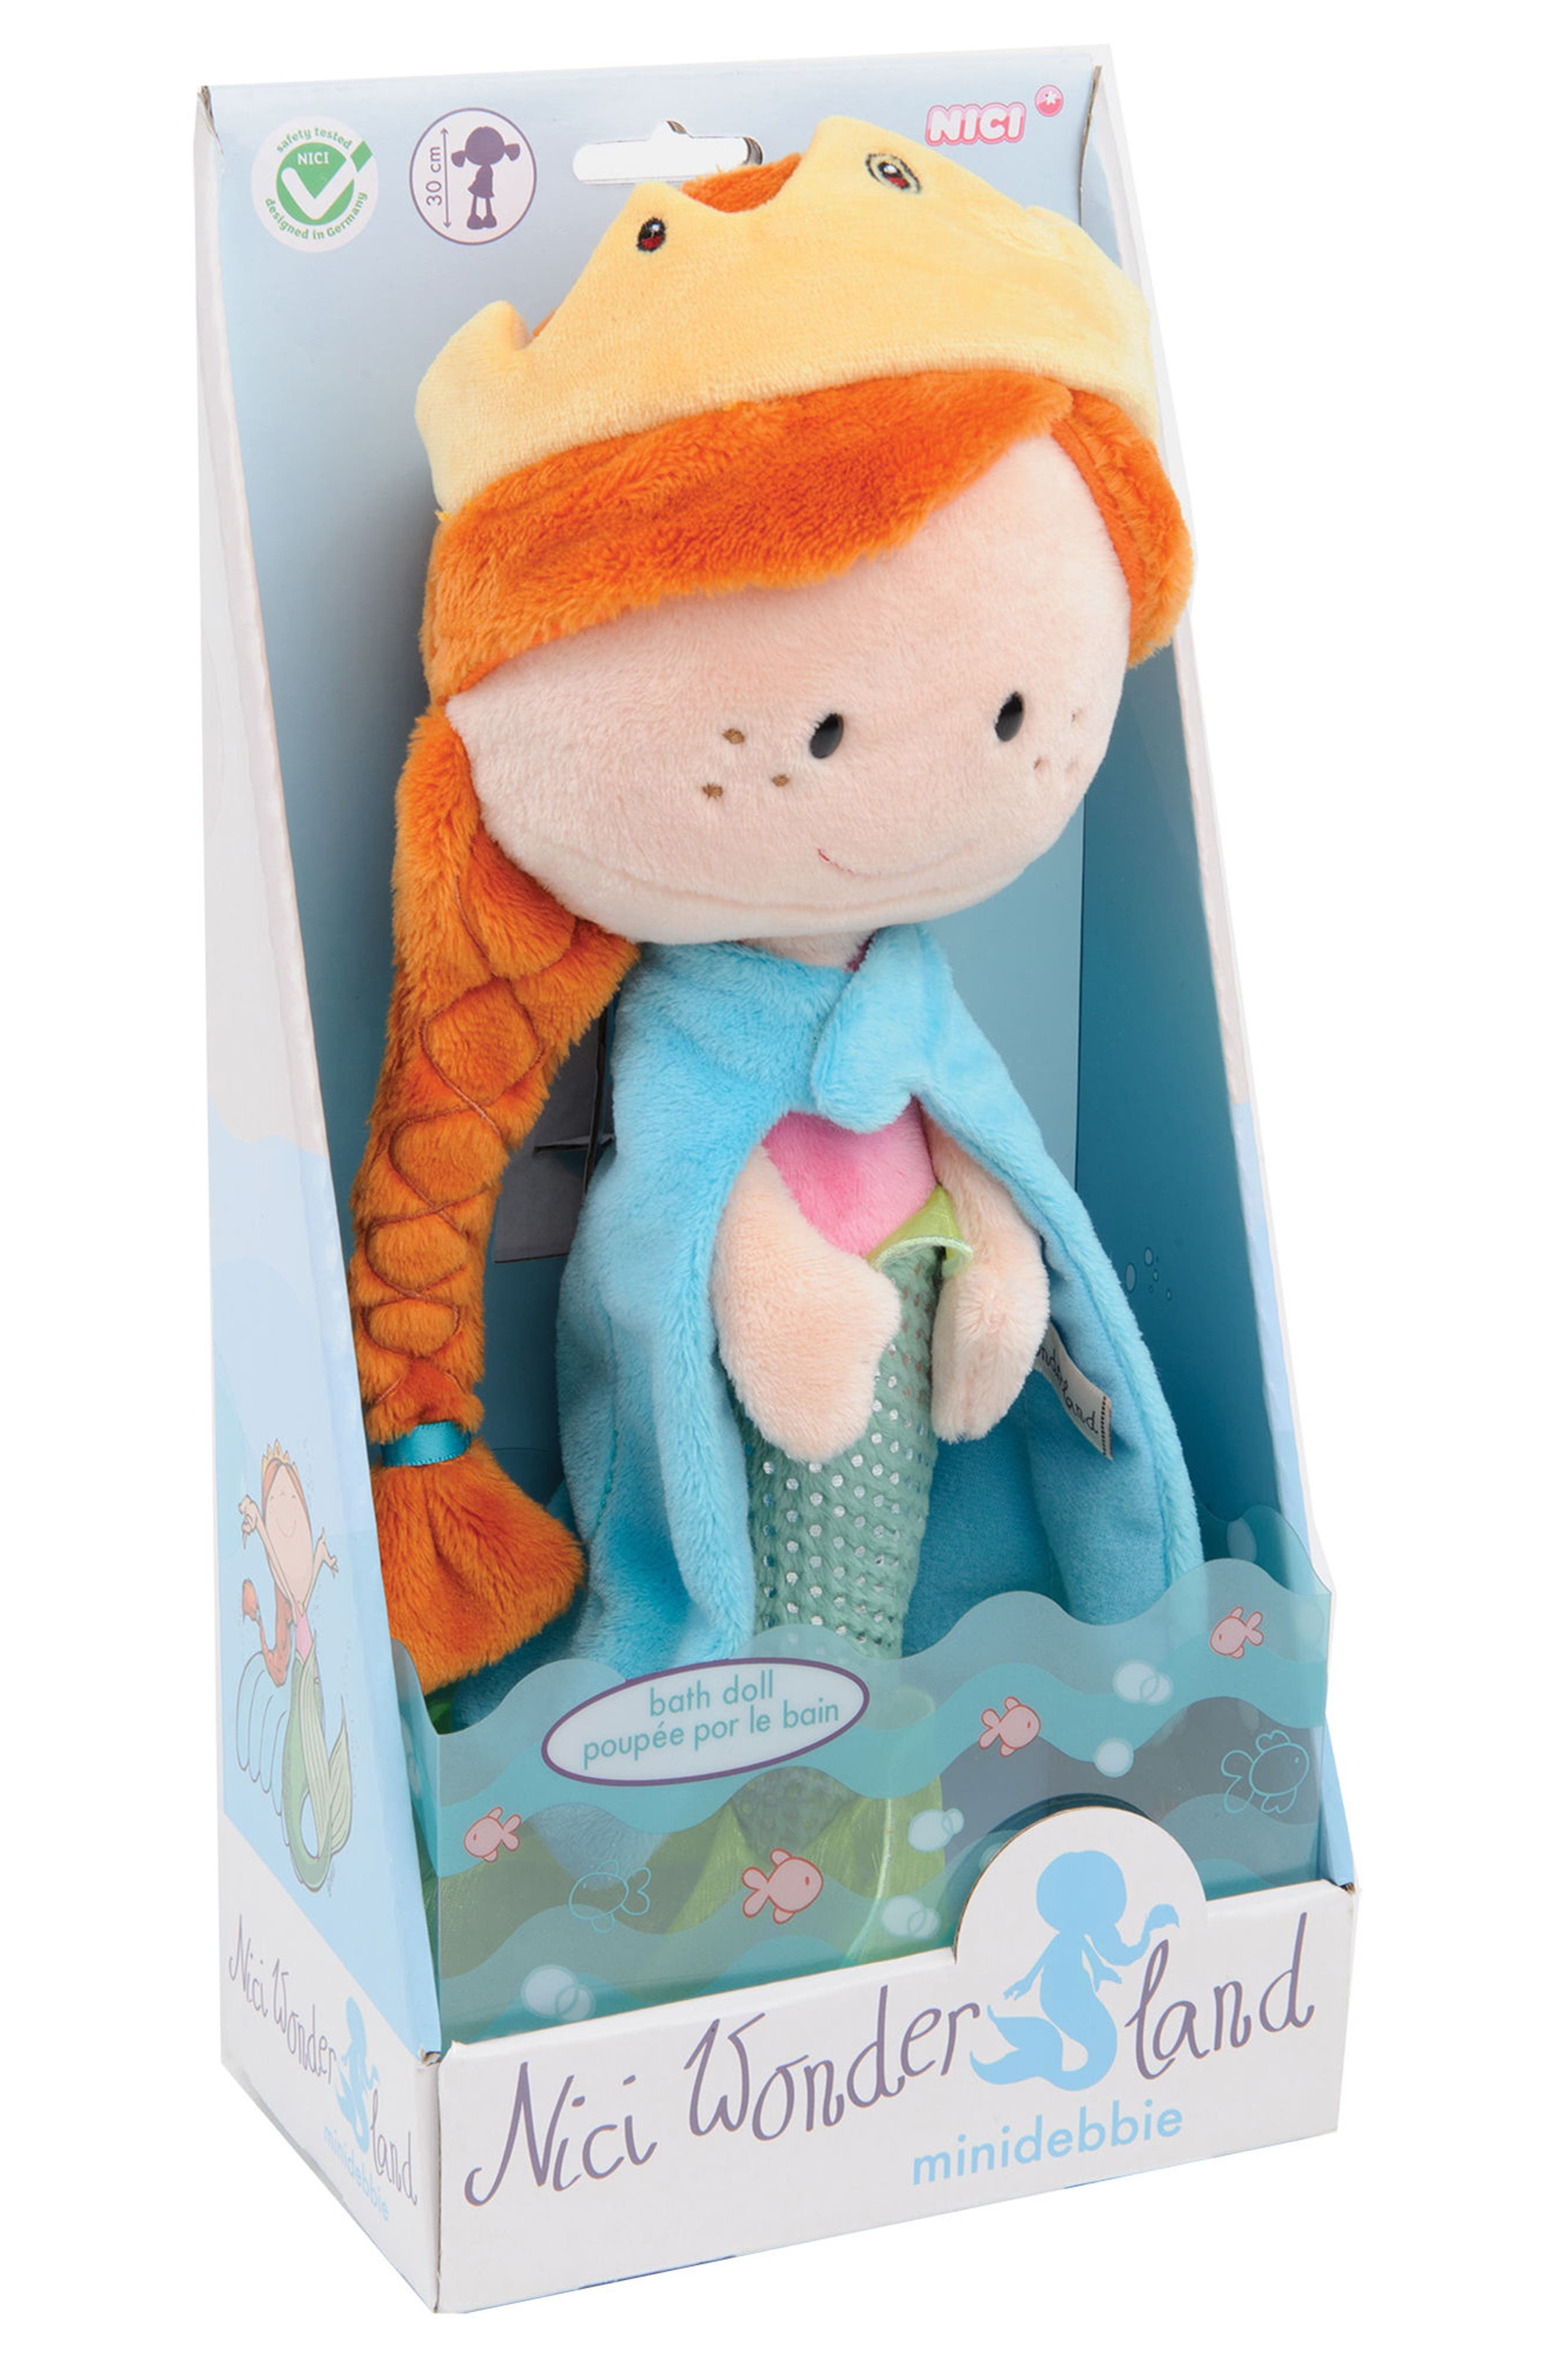 Neat Oh! Nici<sup>®</sup> Wonderland Minidebbie the Mermaid Plush Doll,                         Main,                         color, 400